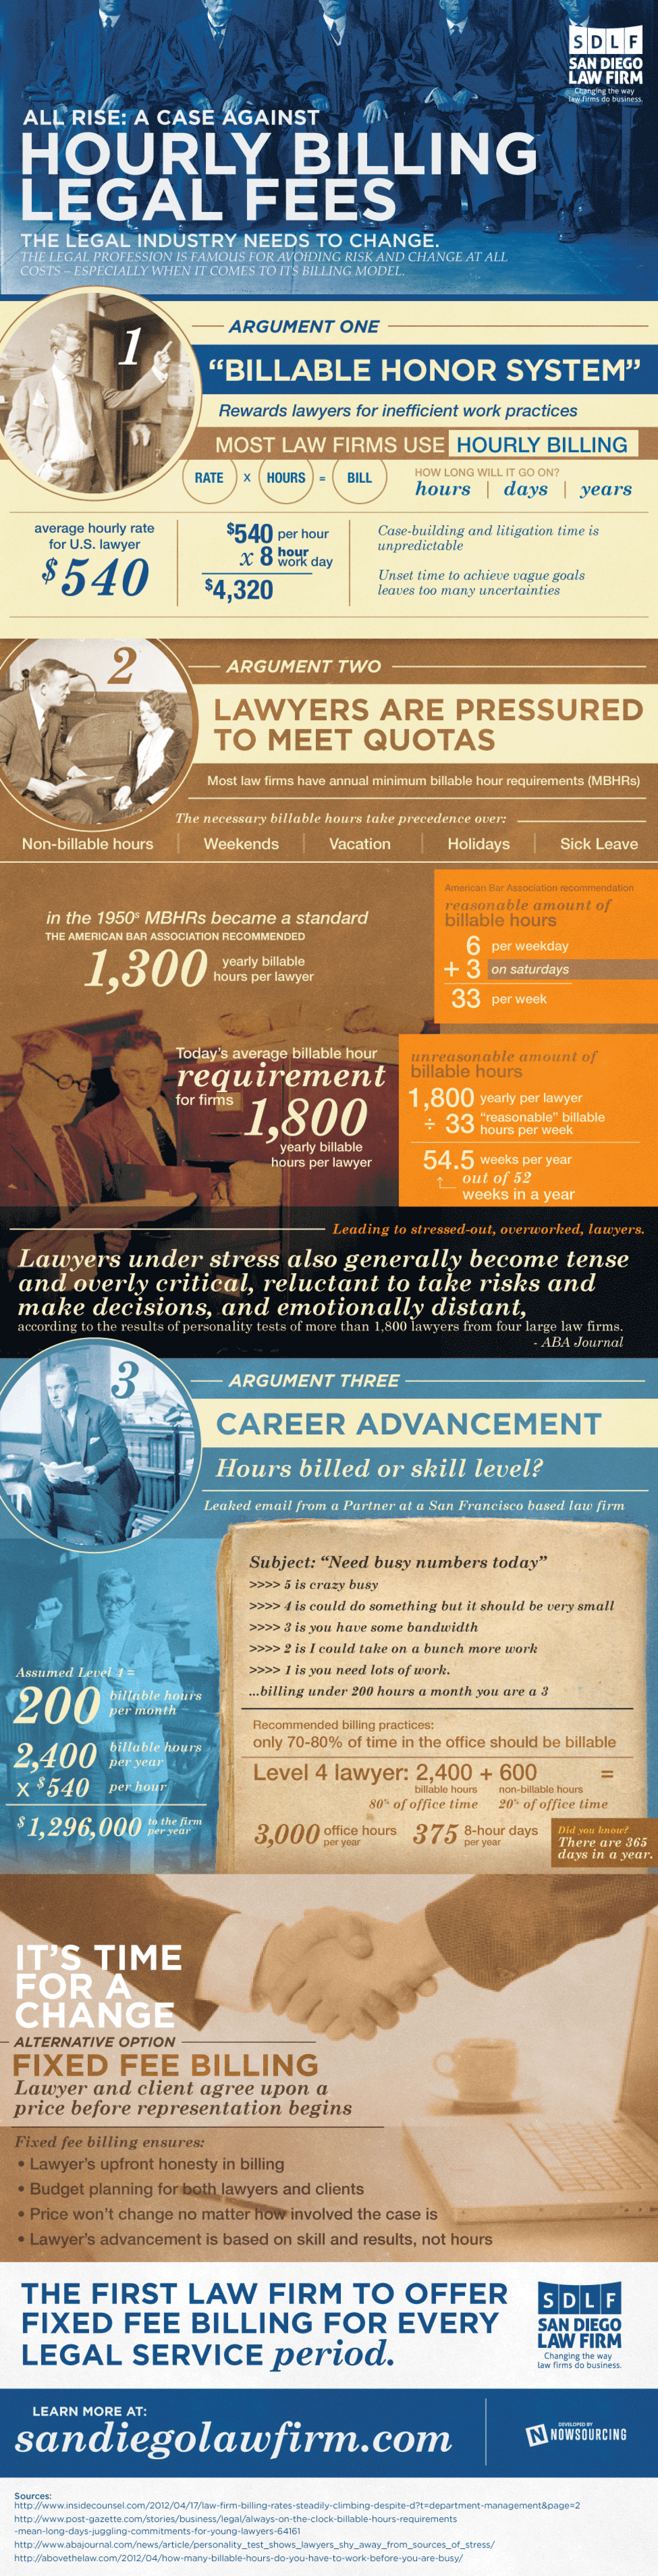 All Rise: A Case Against Hourly Billing Legal Fees Infographic